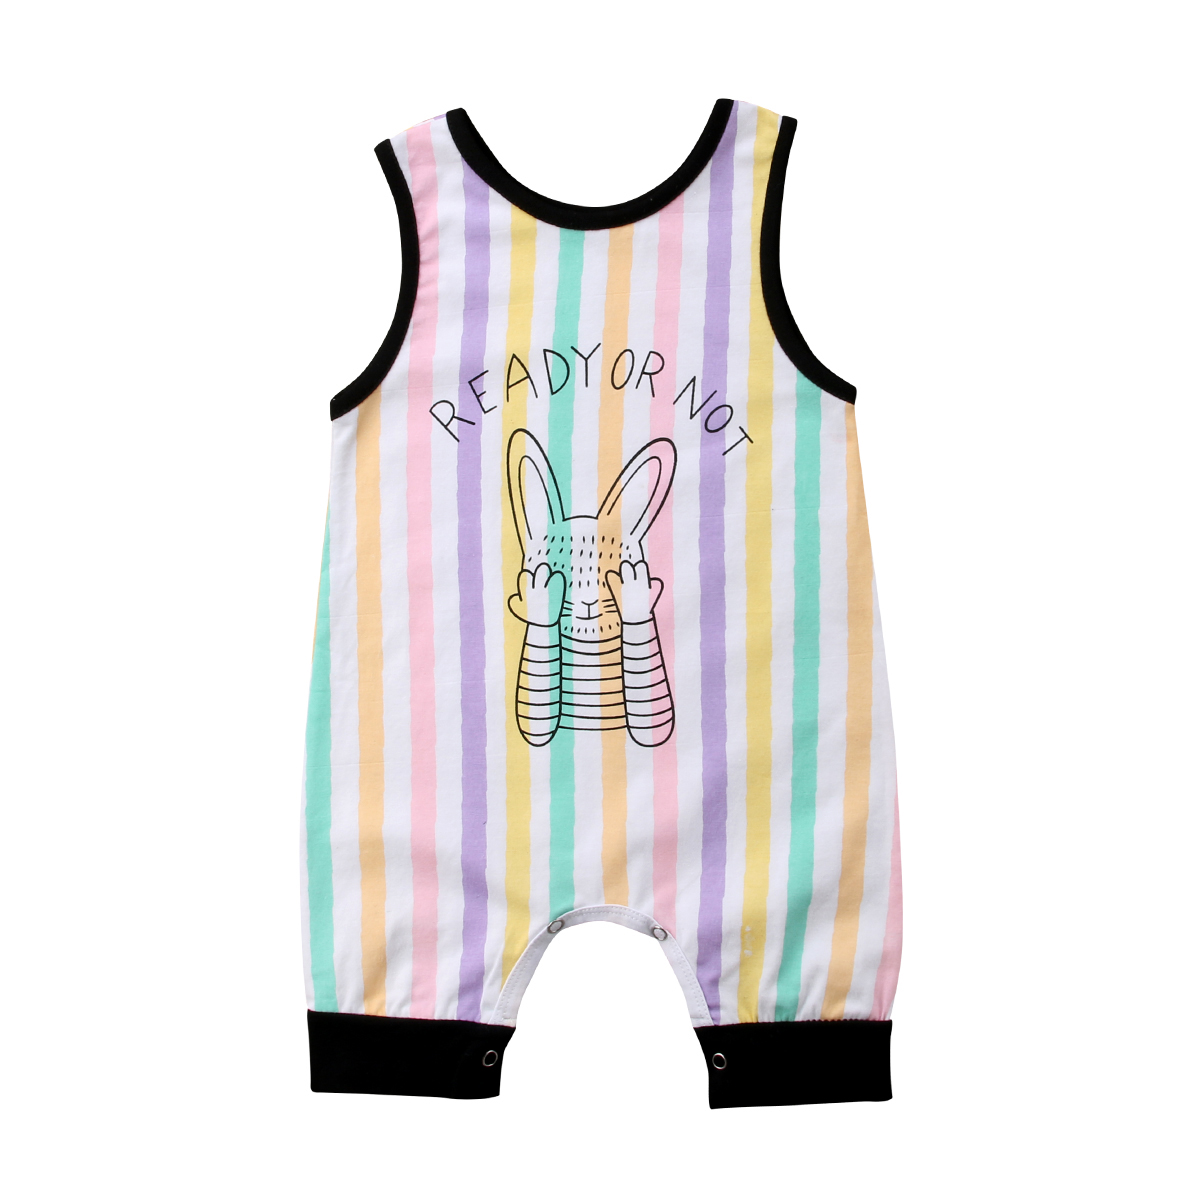 Toddler Baby Boys Cartoon Dinosaur Bodysuit Jumpsuit Outfit Clothes 0-3t Matching In Colour Clothing Sets Girls' Baby Clothing